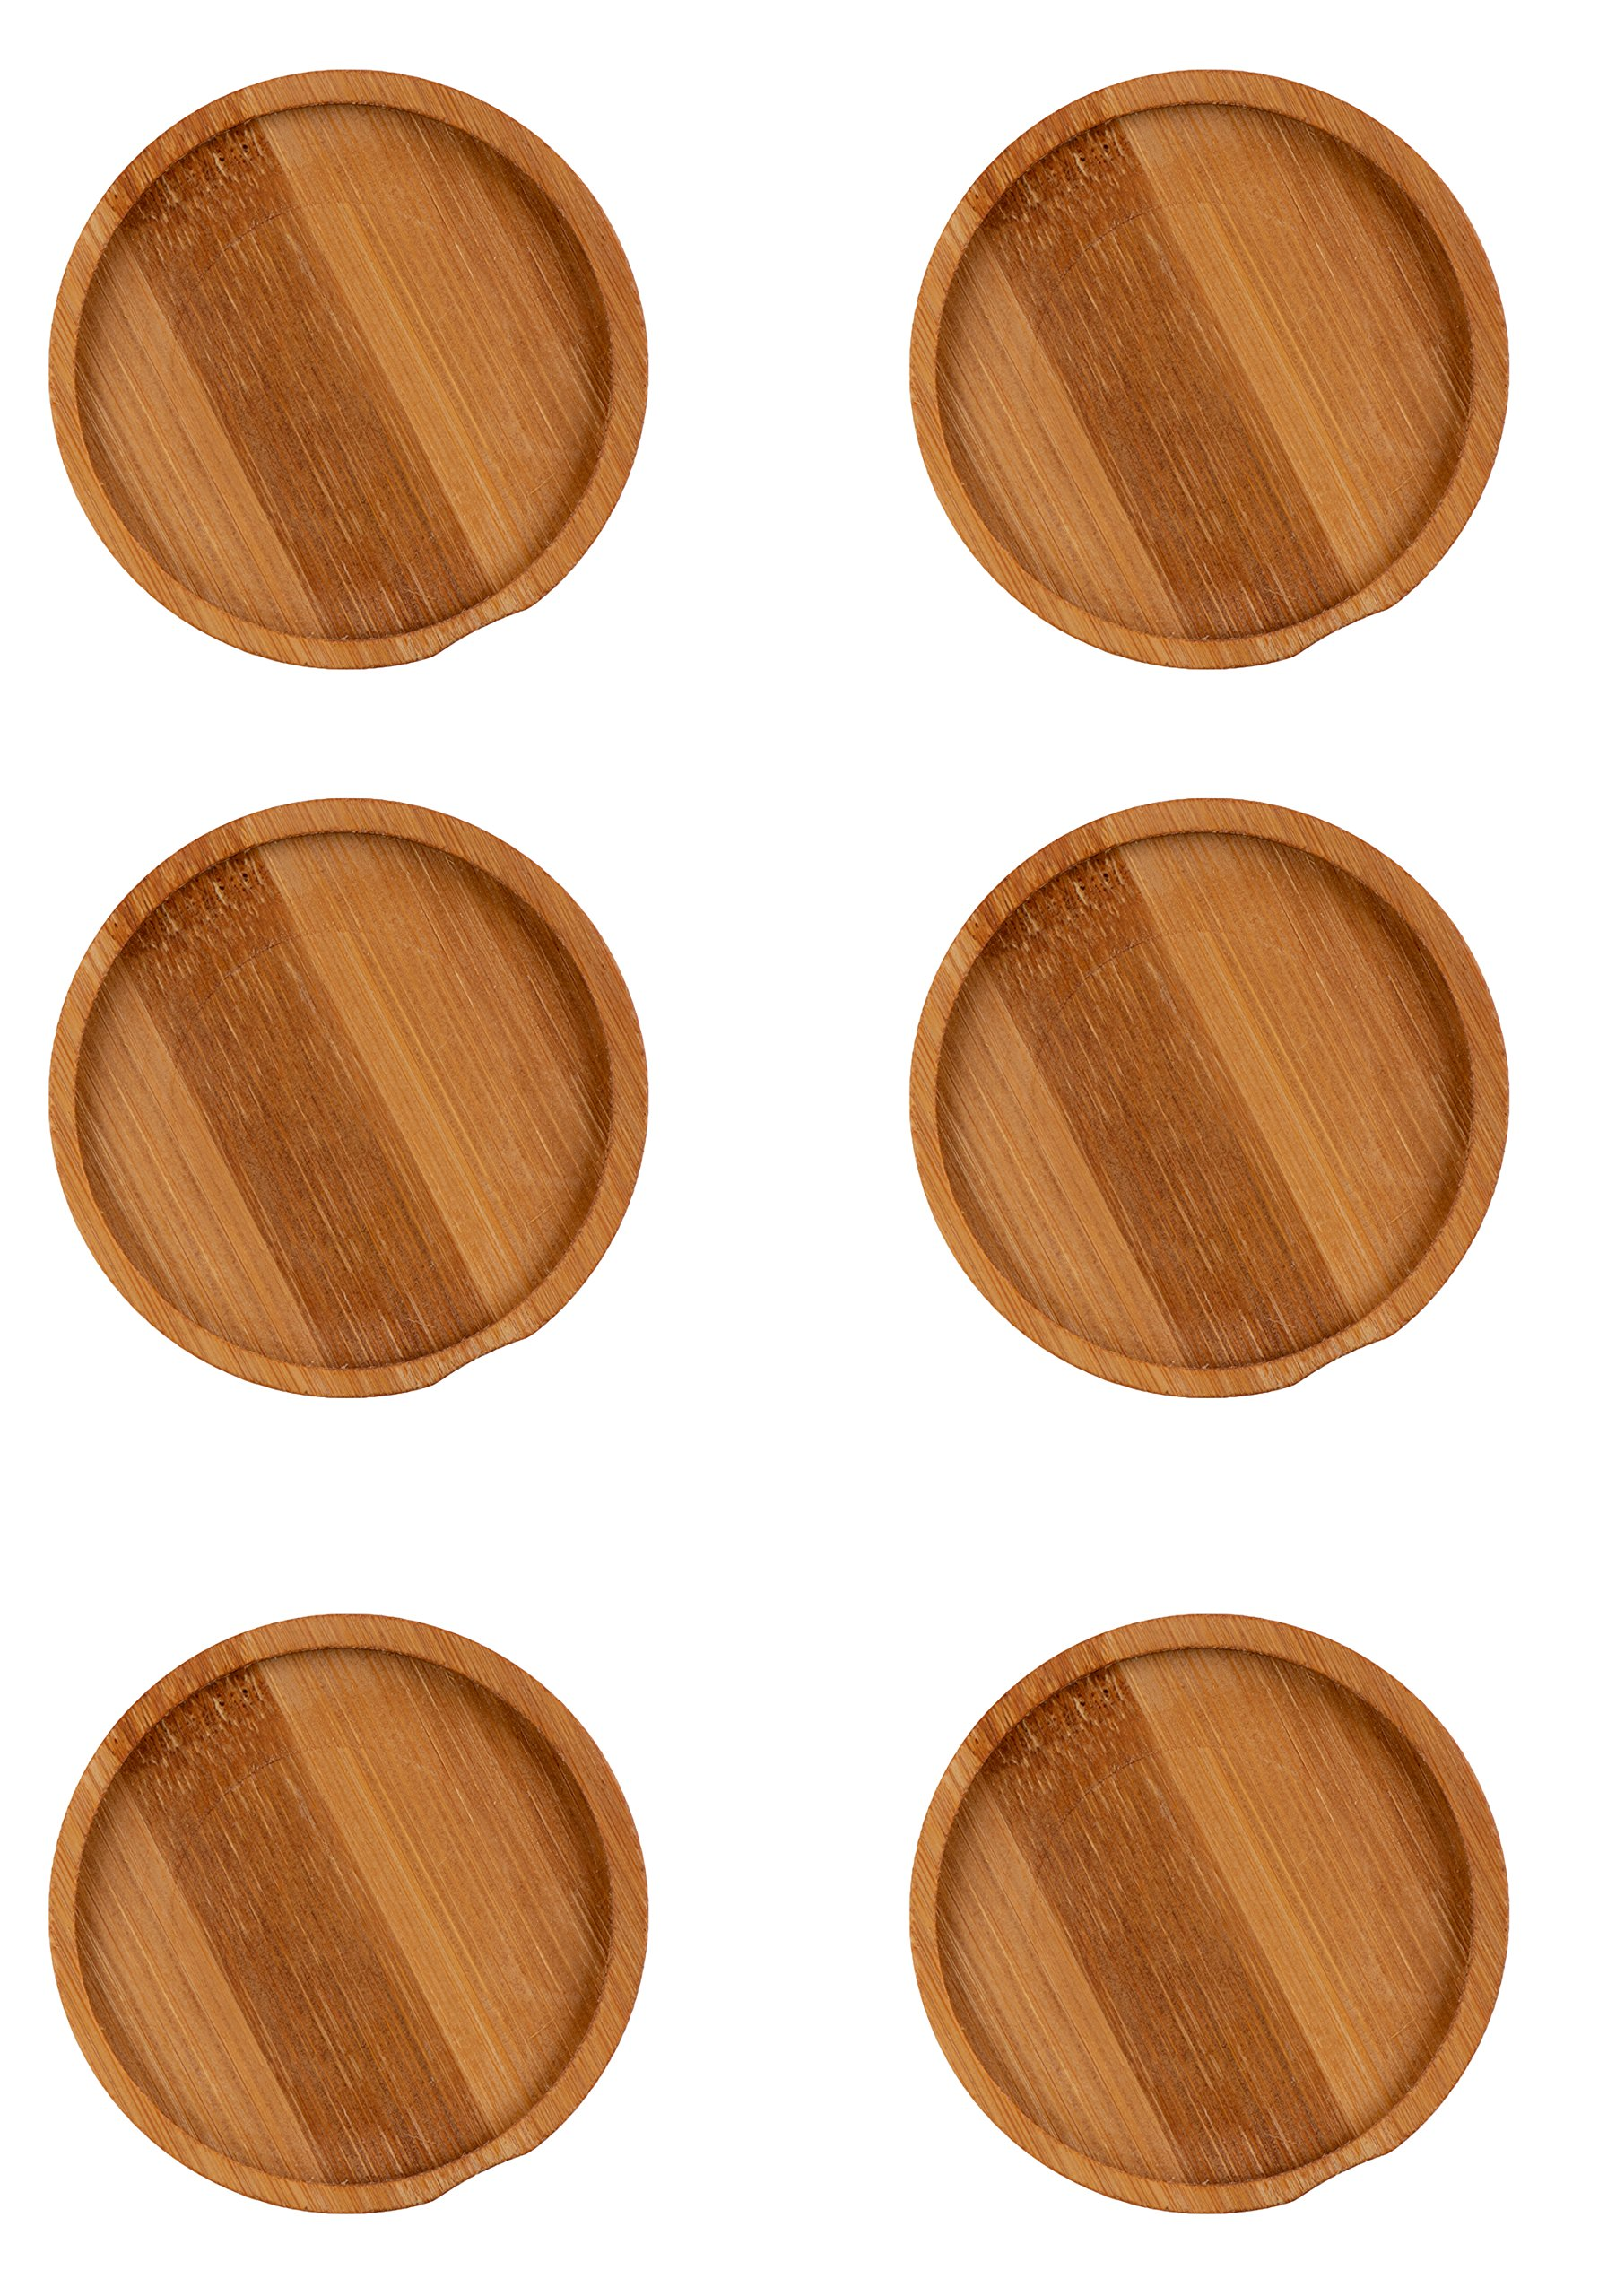 Juvale Wood Coasters - 6-Pack Round Wooden Coasters